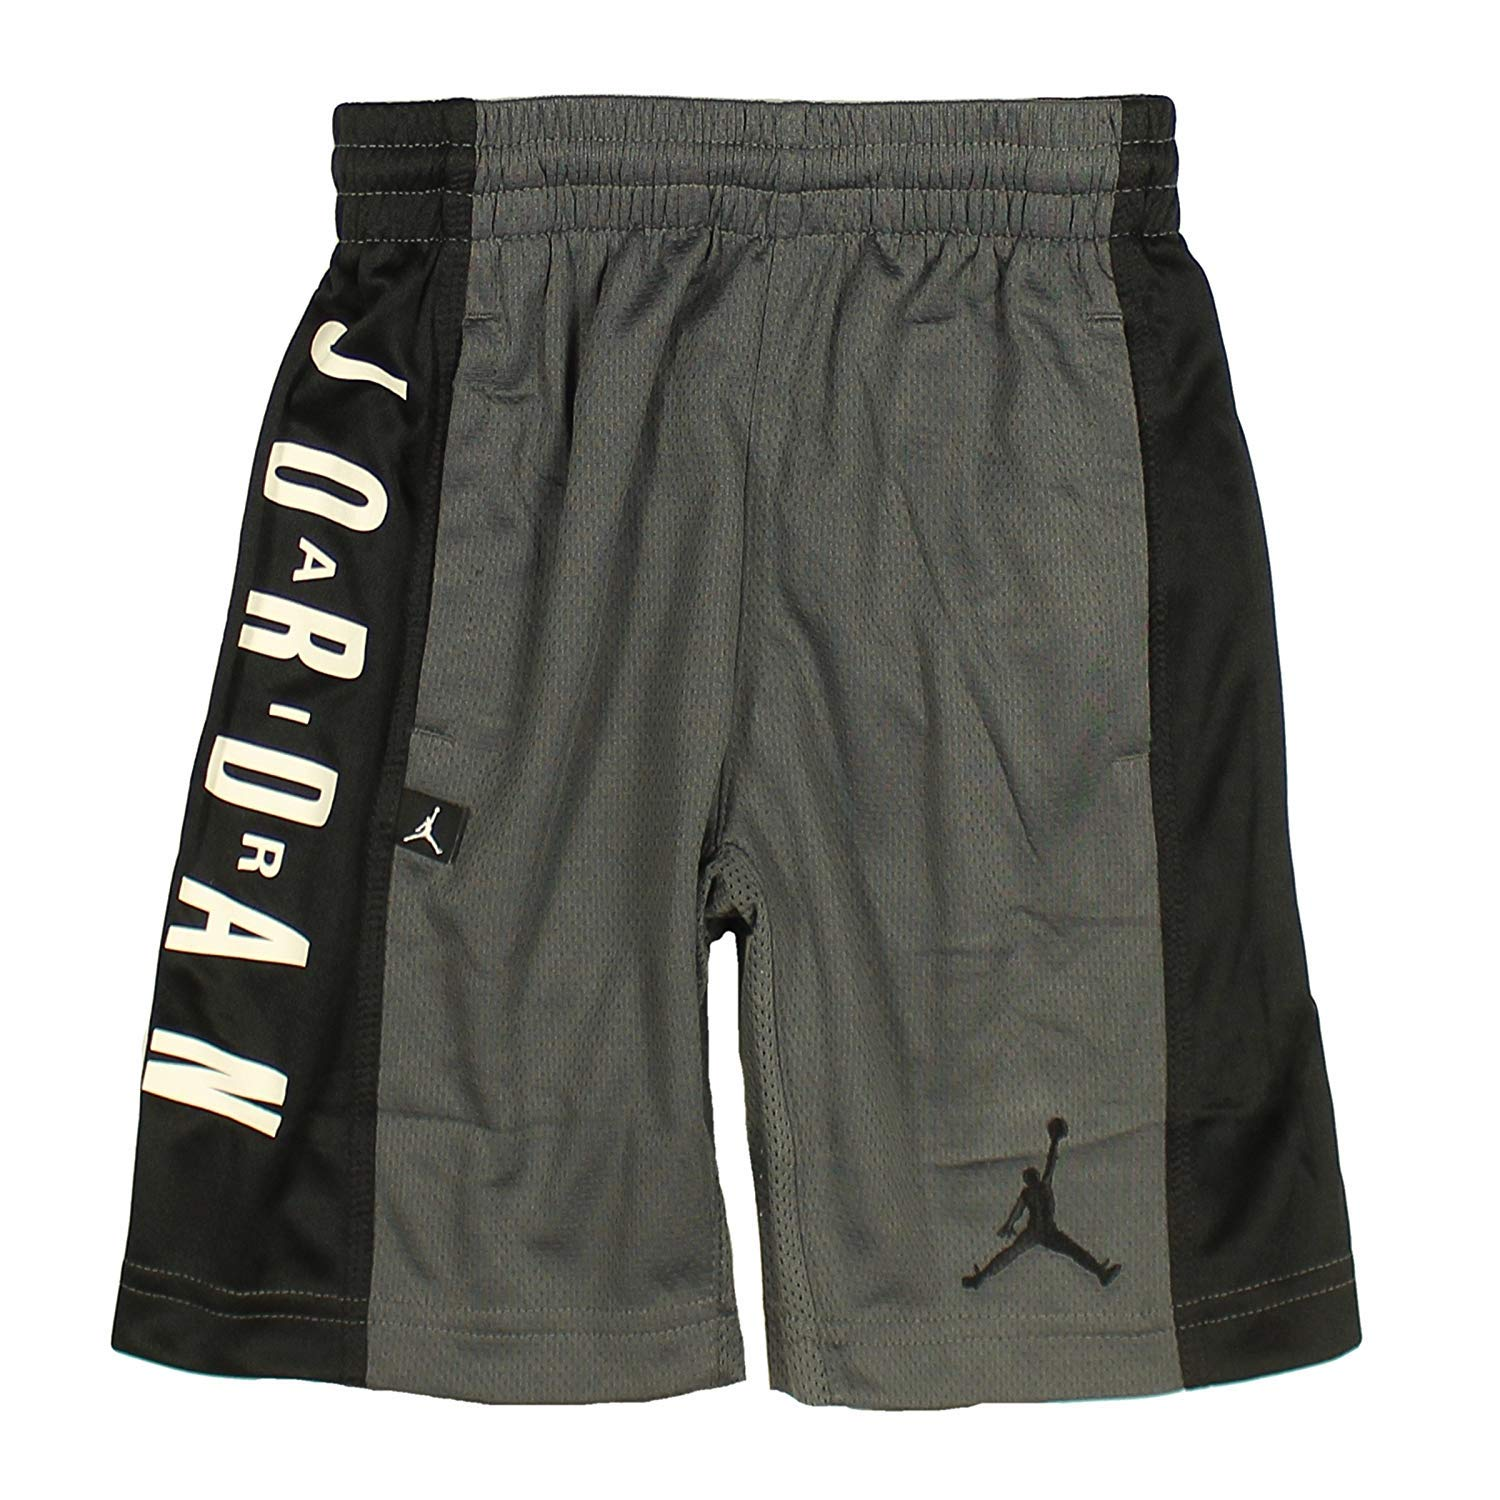 63680f52d80 Amazon.com: Jordan Nike Air Boy's' Highlight Dri-Fit Athletic Mesh  Basketball Shorts (6 (5-6 yrs), Dark Gray/Black): Clothing